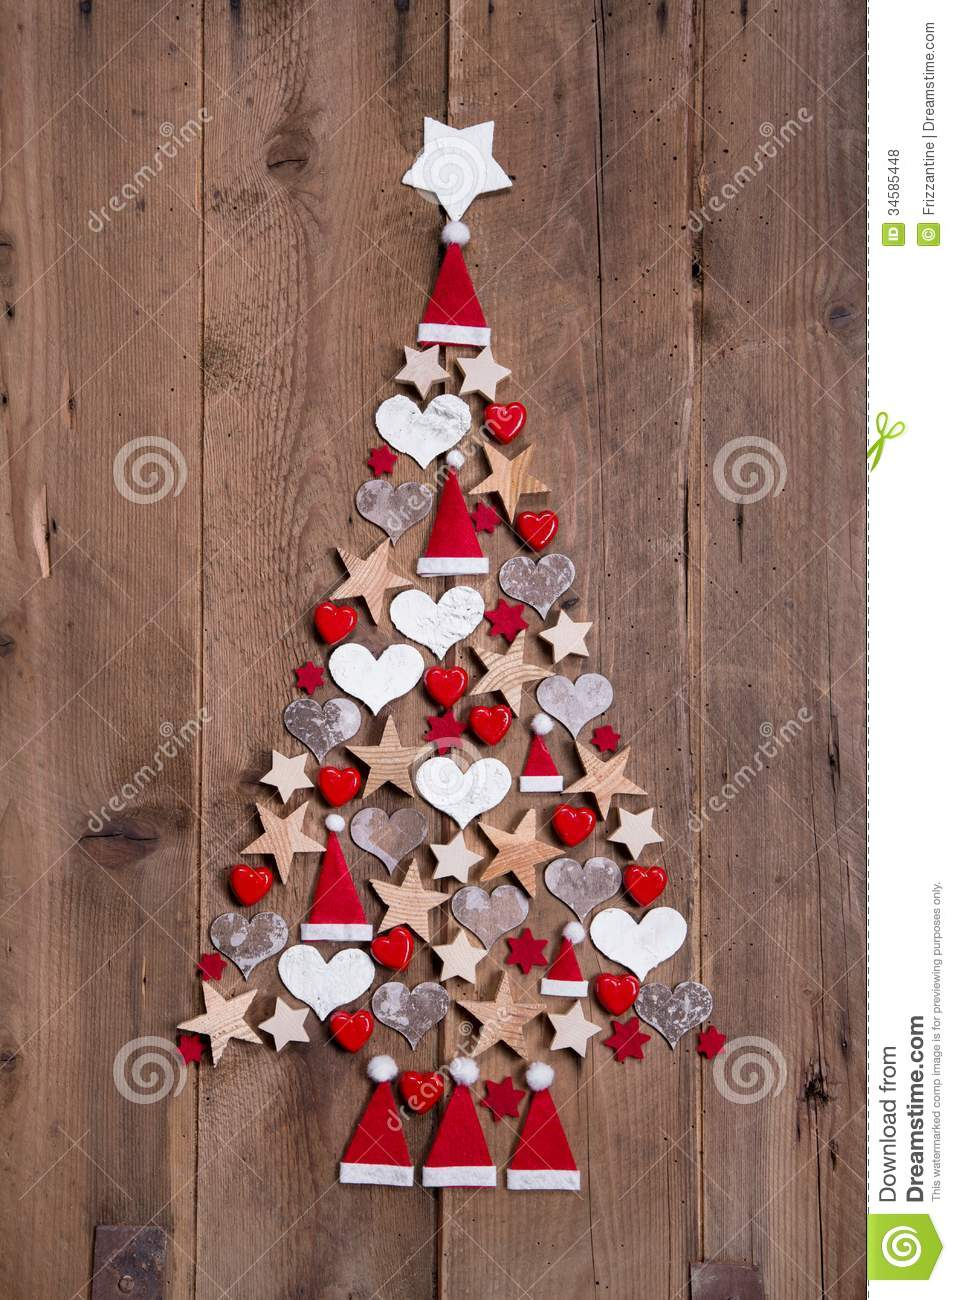 new design for a christmas tree red and white decoration - Modern Contemporary Christmas Decorations